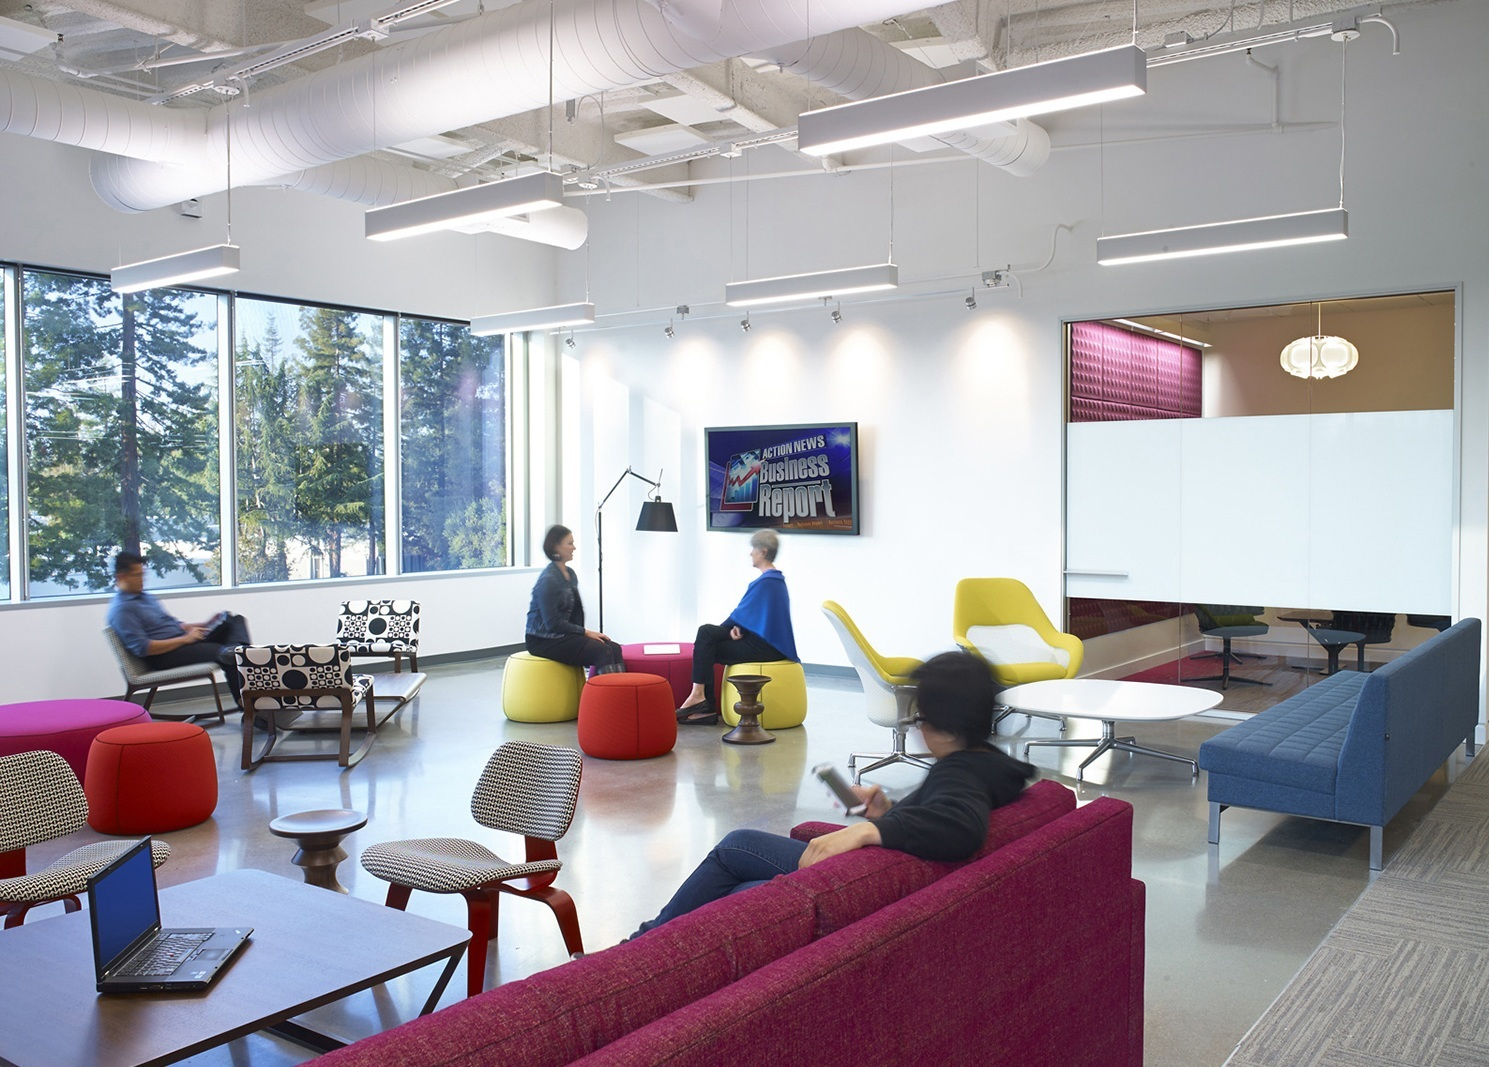 Take a Look at LinkedIn's New Sunnyvale Office